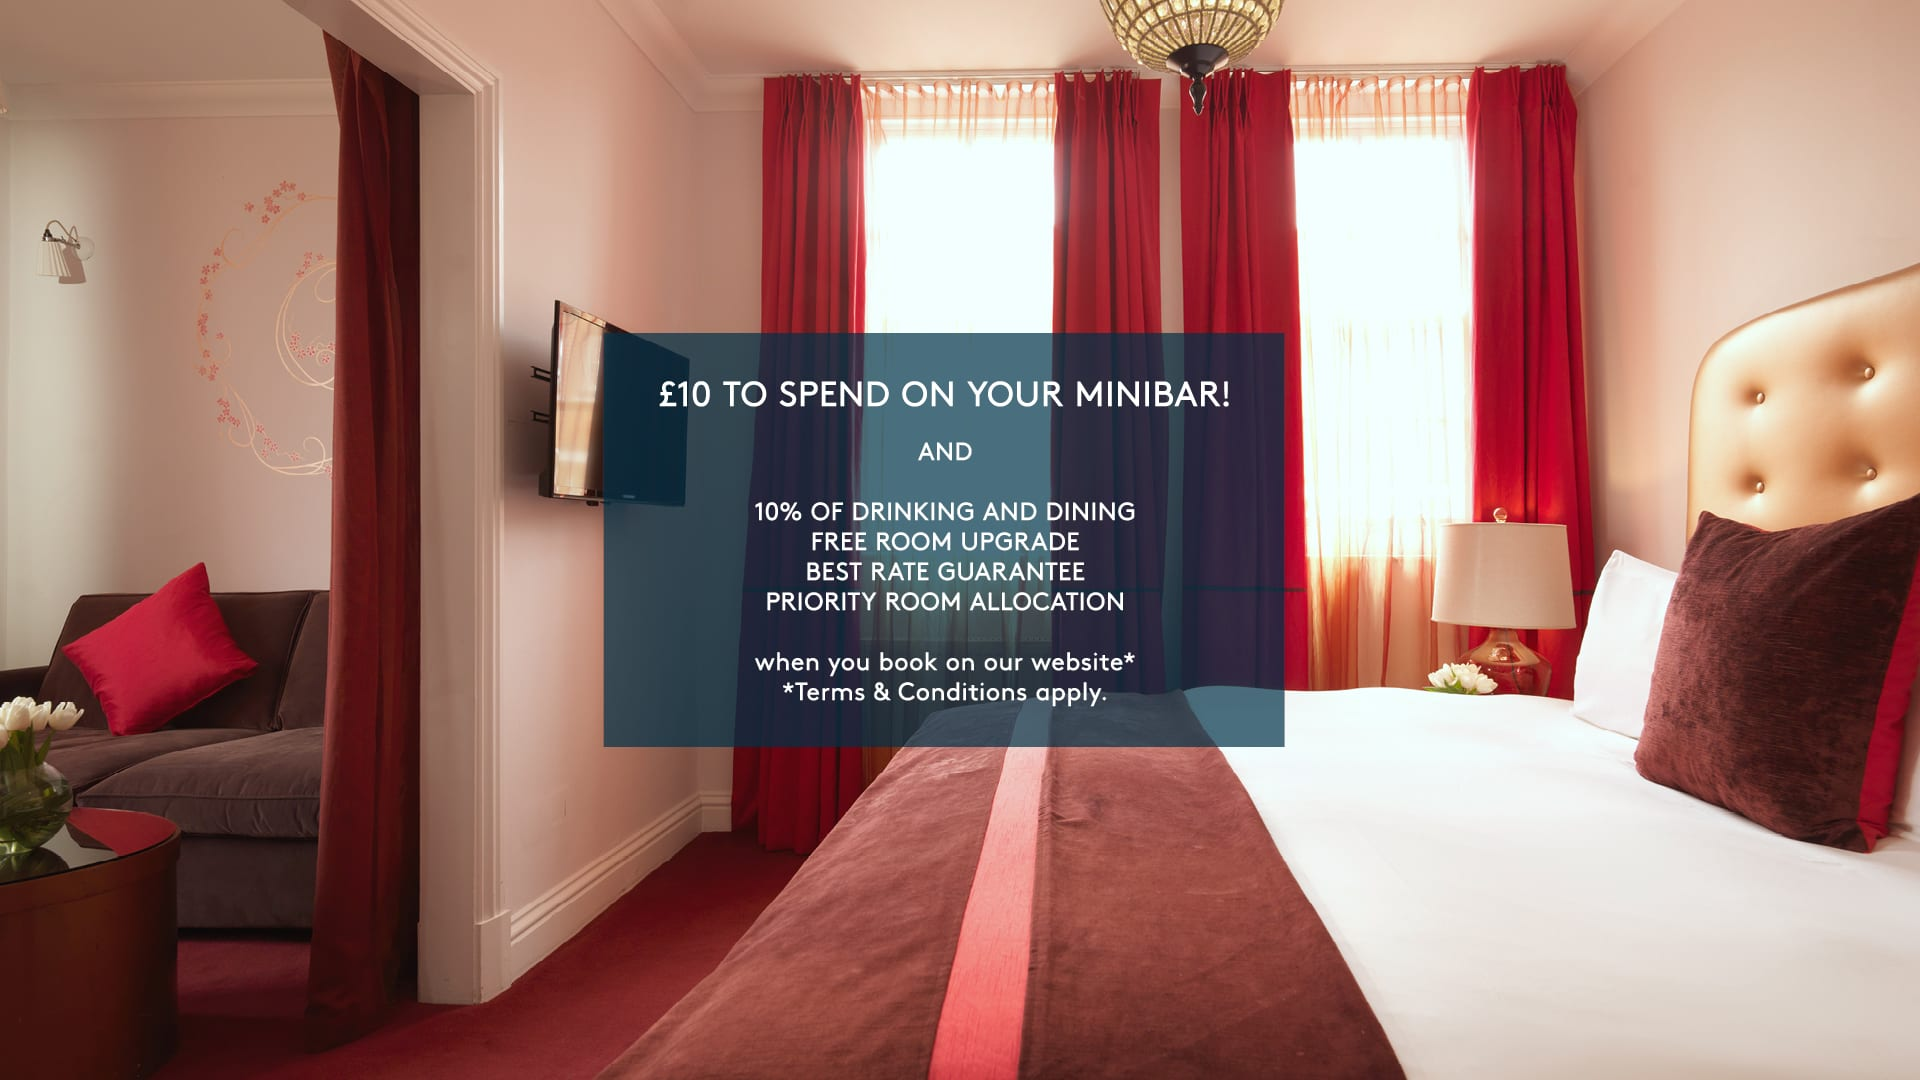 Book Direct Benefits at My Hotels - £10 to spend on your minibar and other benefits when you book direct. When you book here on our website we can offer you great rates and special benefits you won't find on any other travel website. So book directly with My Hotels and you'll receive: – £10 minibar credit to spend on what you fancy – 10% off drinking and dining – Our Best Rate guarantee – Priority room allocation – Free Wifi – Access to special discounts and packages not available elsewhere £10 minibar credit We'll give you a £10 credit per booking against your minibar spend, so treat yourself to a comforting snack, a favourite tipple or recharging energy boost 10% off drinking and dining Show your key card wallet in our hotels at the following outlets for 10% off your bill: My Bloomsbury – Gail's Bakery and Gail's Kitchen My Chelsea – The Living Room My Brighton – Breakfast, Afternoon Tea, Drinks before 9pm at Merkaba Best Rate Guarantee Find a cheaper rate for the same room on the same terms within 24 hours of booking and we will refund double the difference and upgrade you to the next available room category (subject to availability). To qualify, email proof of rates/source to the hotel reservations team within 24hours of booking. Sign-up to our news updates and you'll receive special promotional codes to gain additional discounts not available on our website Priority Room Allocation By booking with us directly we'll aim to always have you at the top of the list to get your room first, to get the best room in your category or to have the opportunity to move rooms or be upgraded when we can. Please note that Book Direct benefits are only available to guests booking via our website. If you've booked via any other website or via your company, we're sorry but you won't benefit from these special deals.